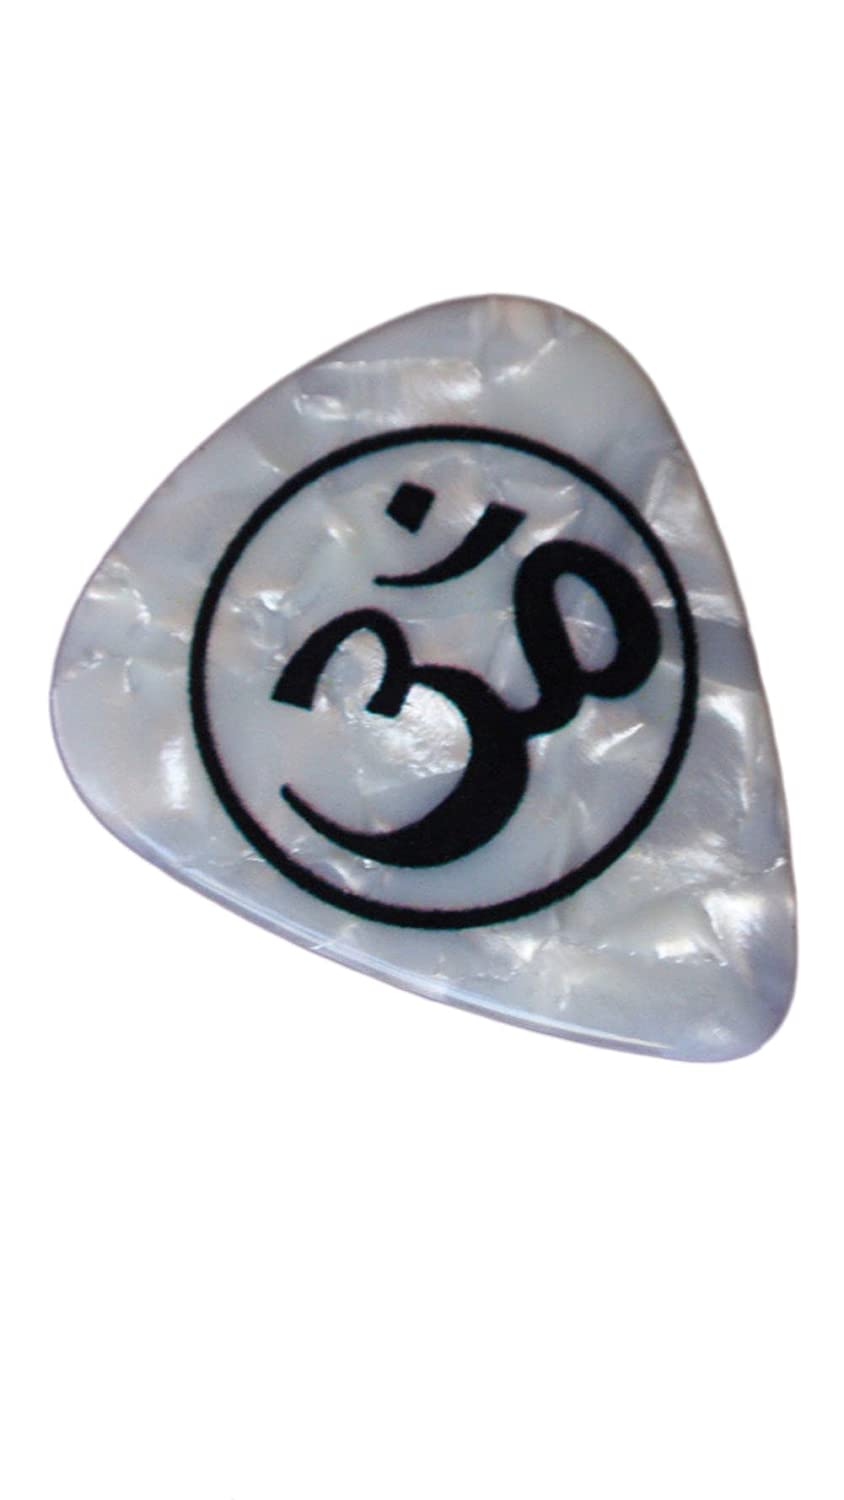 Amazon unique and custom 76mm thick medium gauge hard amazon unique and custom 76mm thick medium gauge hard plastic round tip guitar pick w circular om sound of the universe indian buddhist hindu hexwebz Images